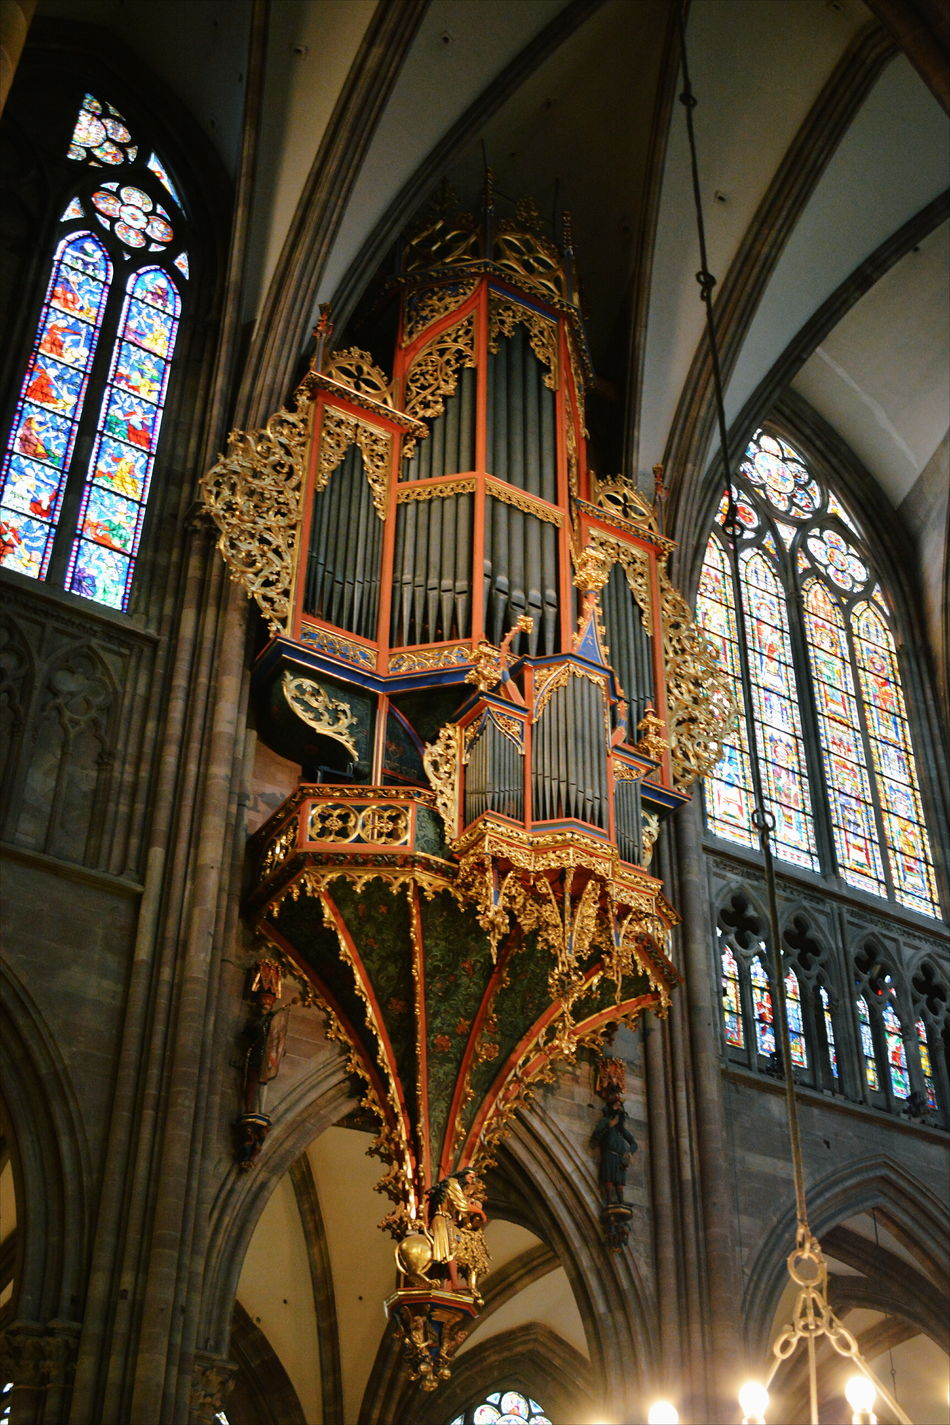 Architecture Cathedral Church Day History Indoors  Instrument Low Angle View Music No People Old Organ Ornate Place Of Worship Stained Glass Window Window Windows Art Is Everywhere